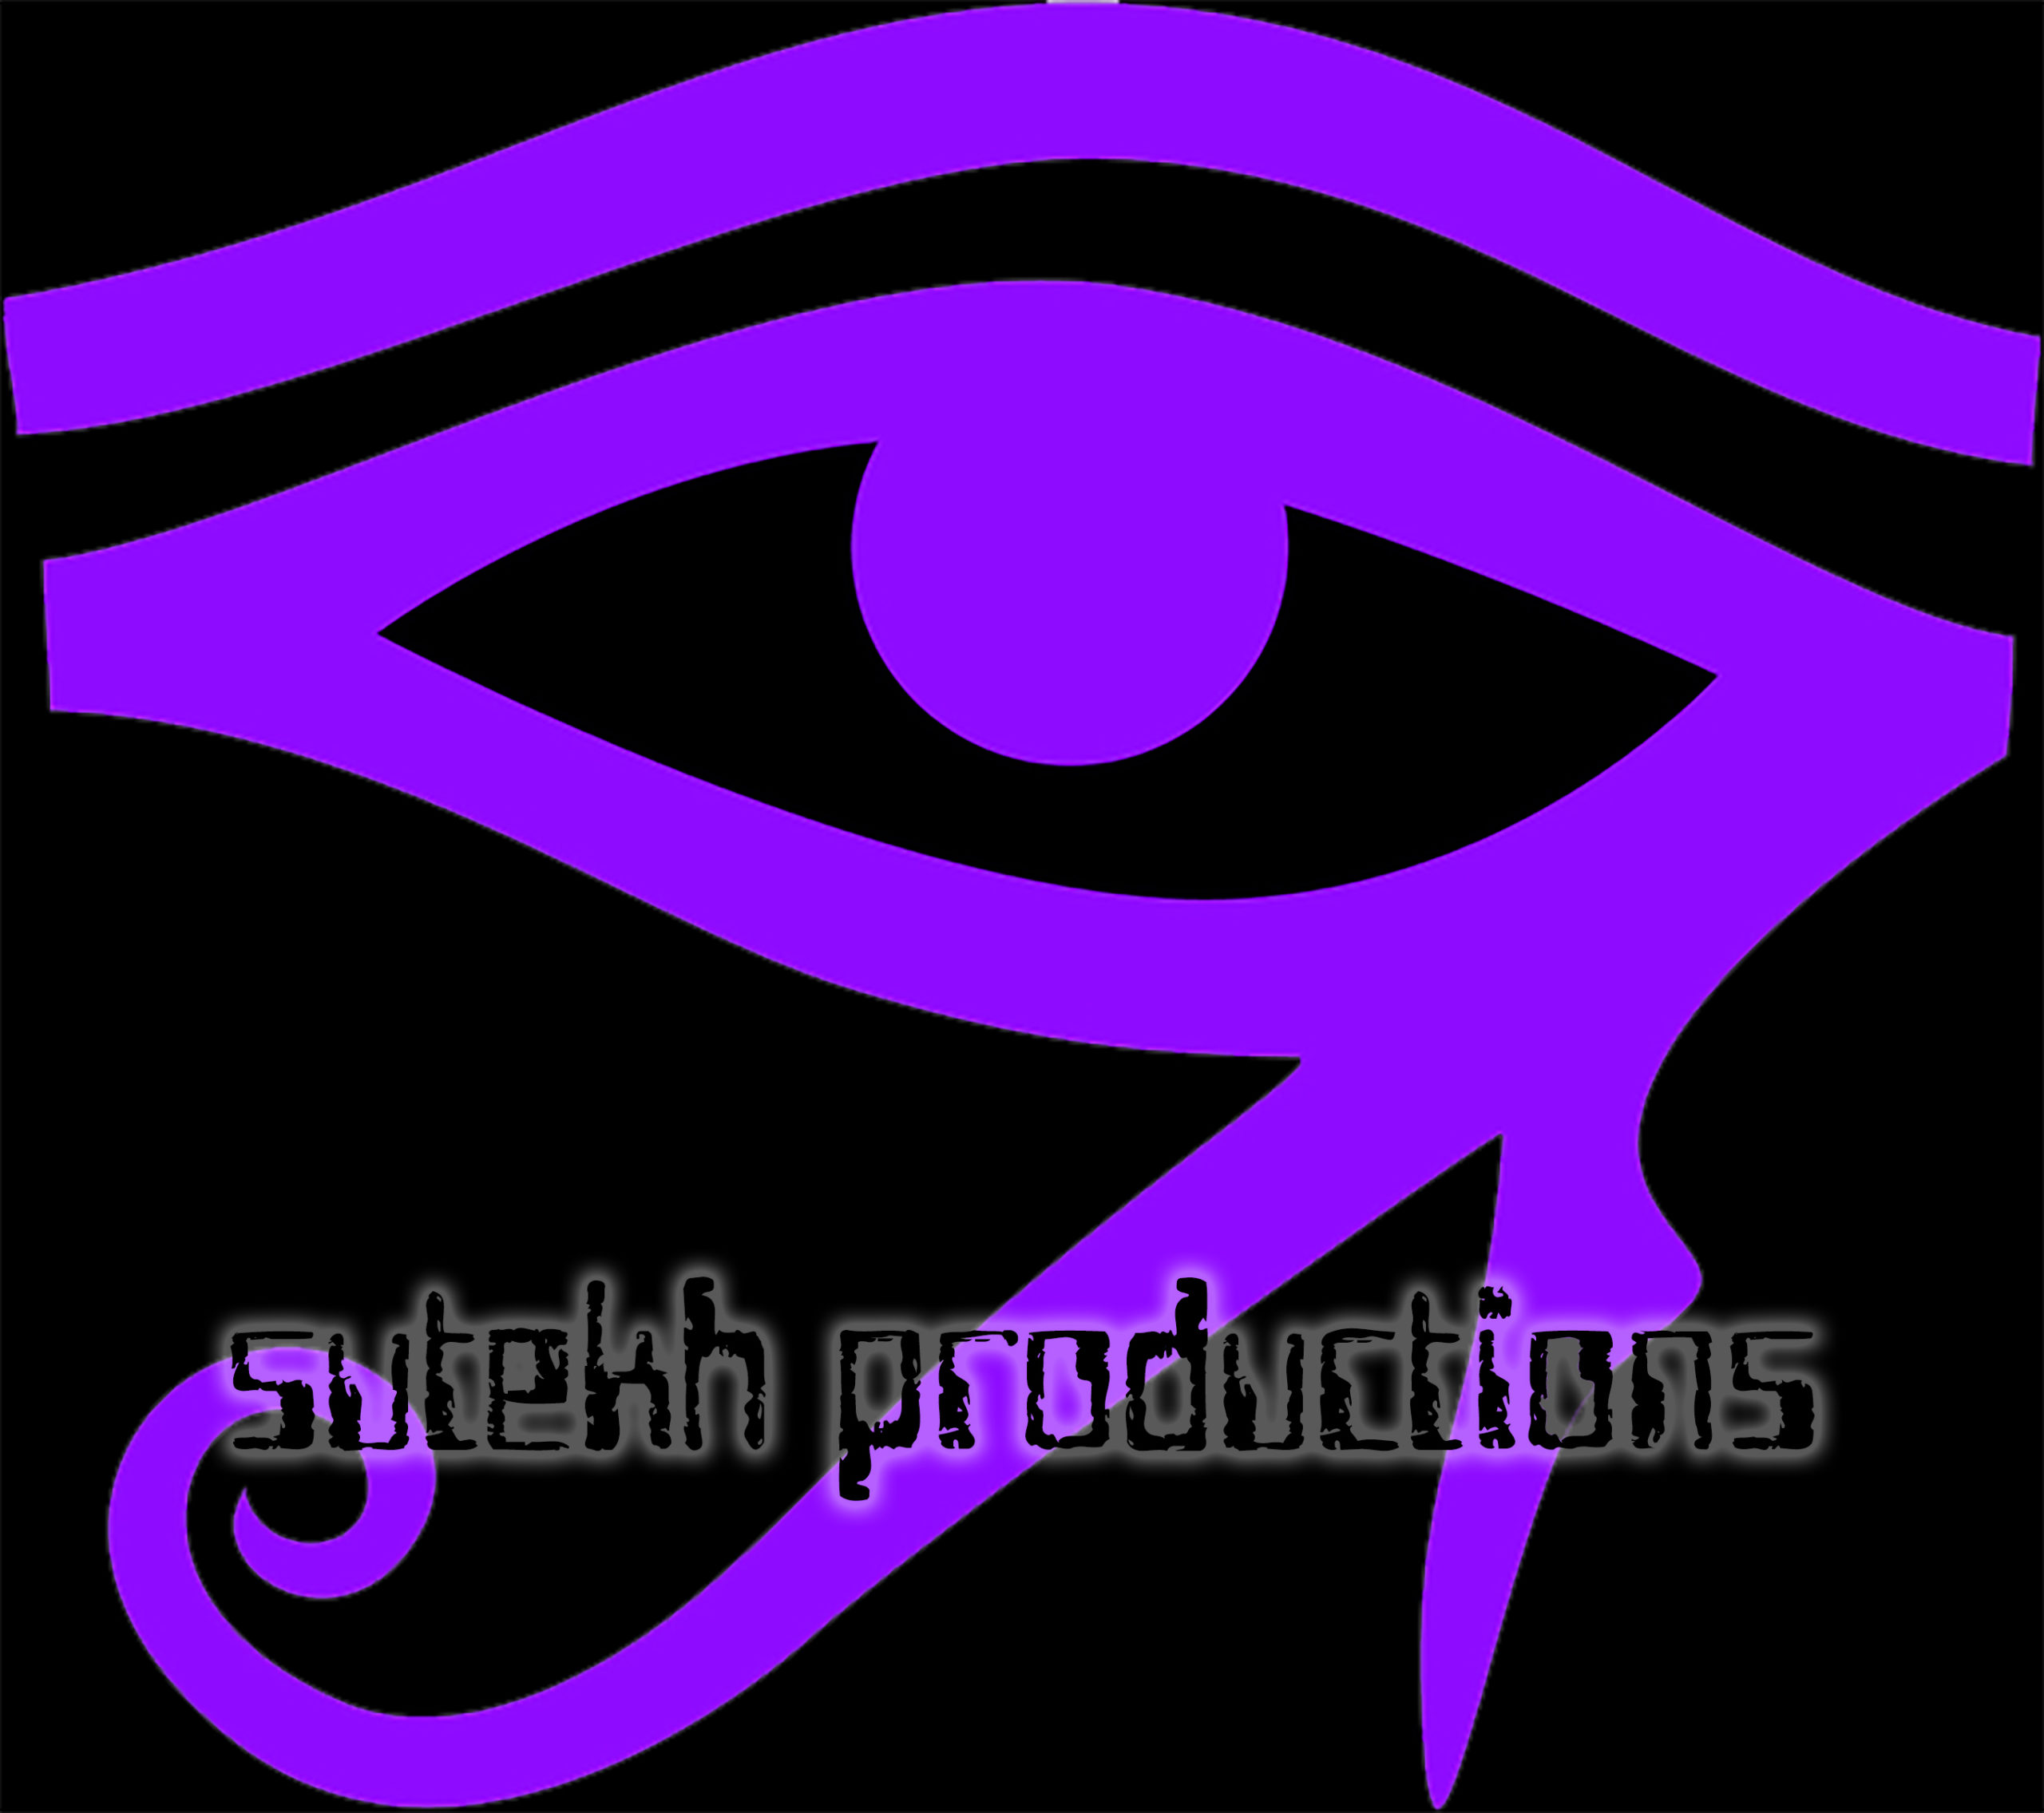 SUTEKH PRODUCTIONS: Light Industrial / Dark Ambient / Ritual Sound